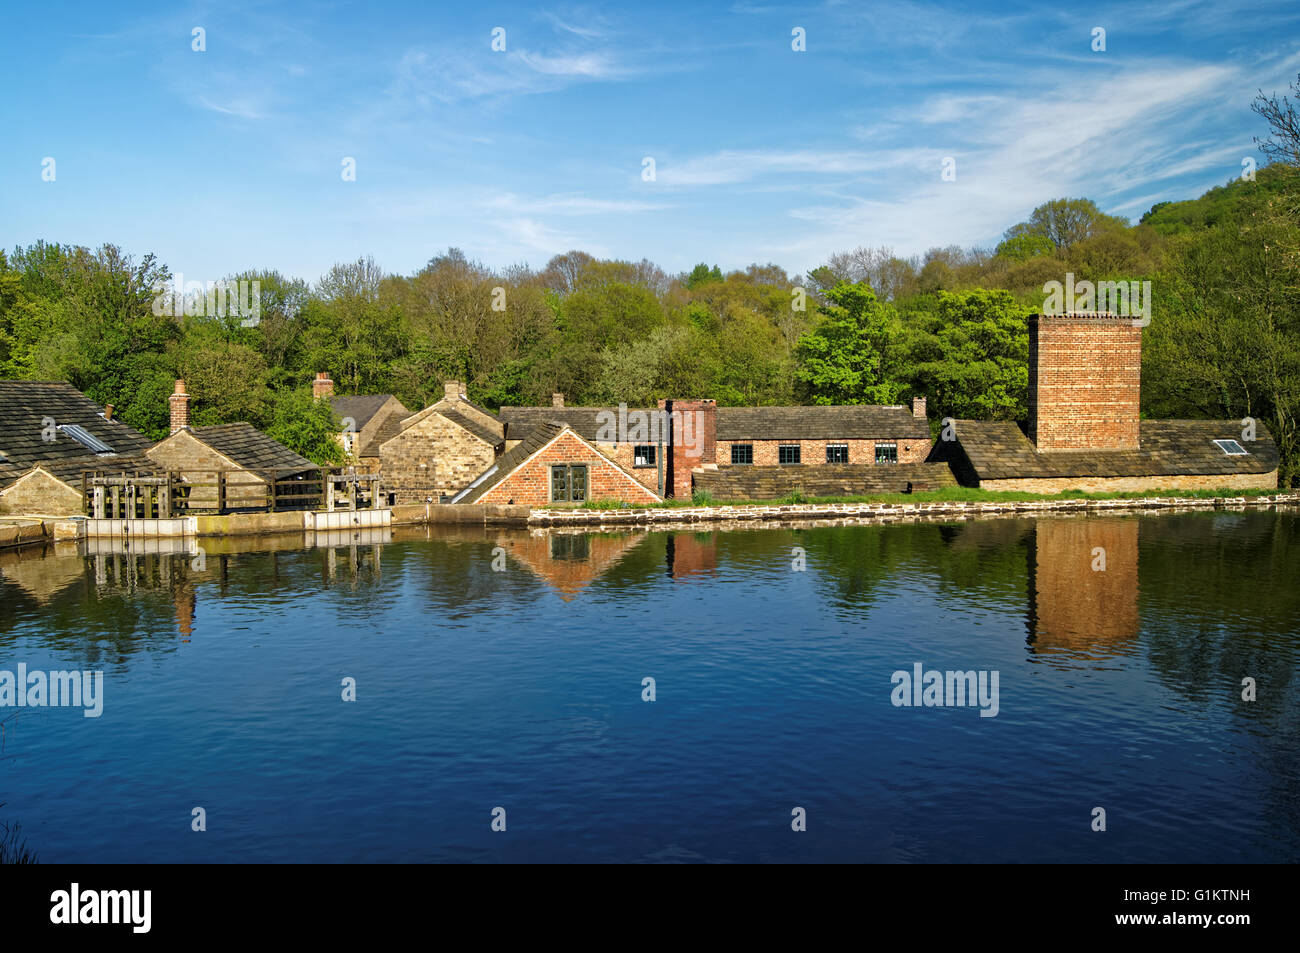 UK,South Yorkshire,Sheffield,Abbeydale Industrial Hamlet - Stock Image